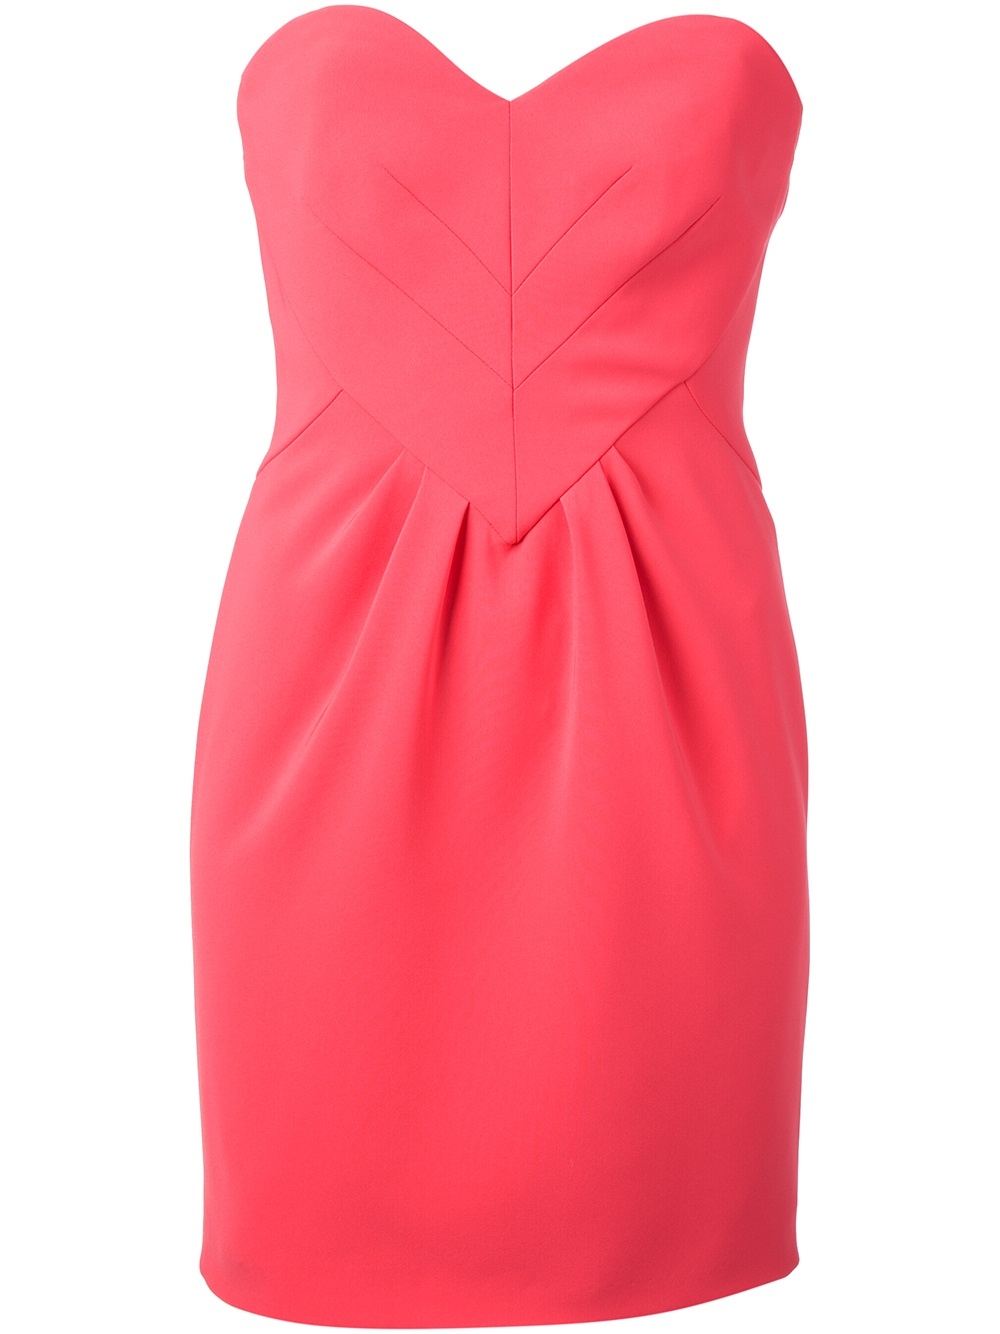 Lyst - Moschino Strapless Heart-shaped Mini Dress in Pink